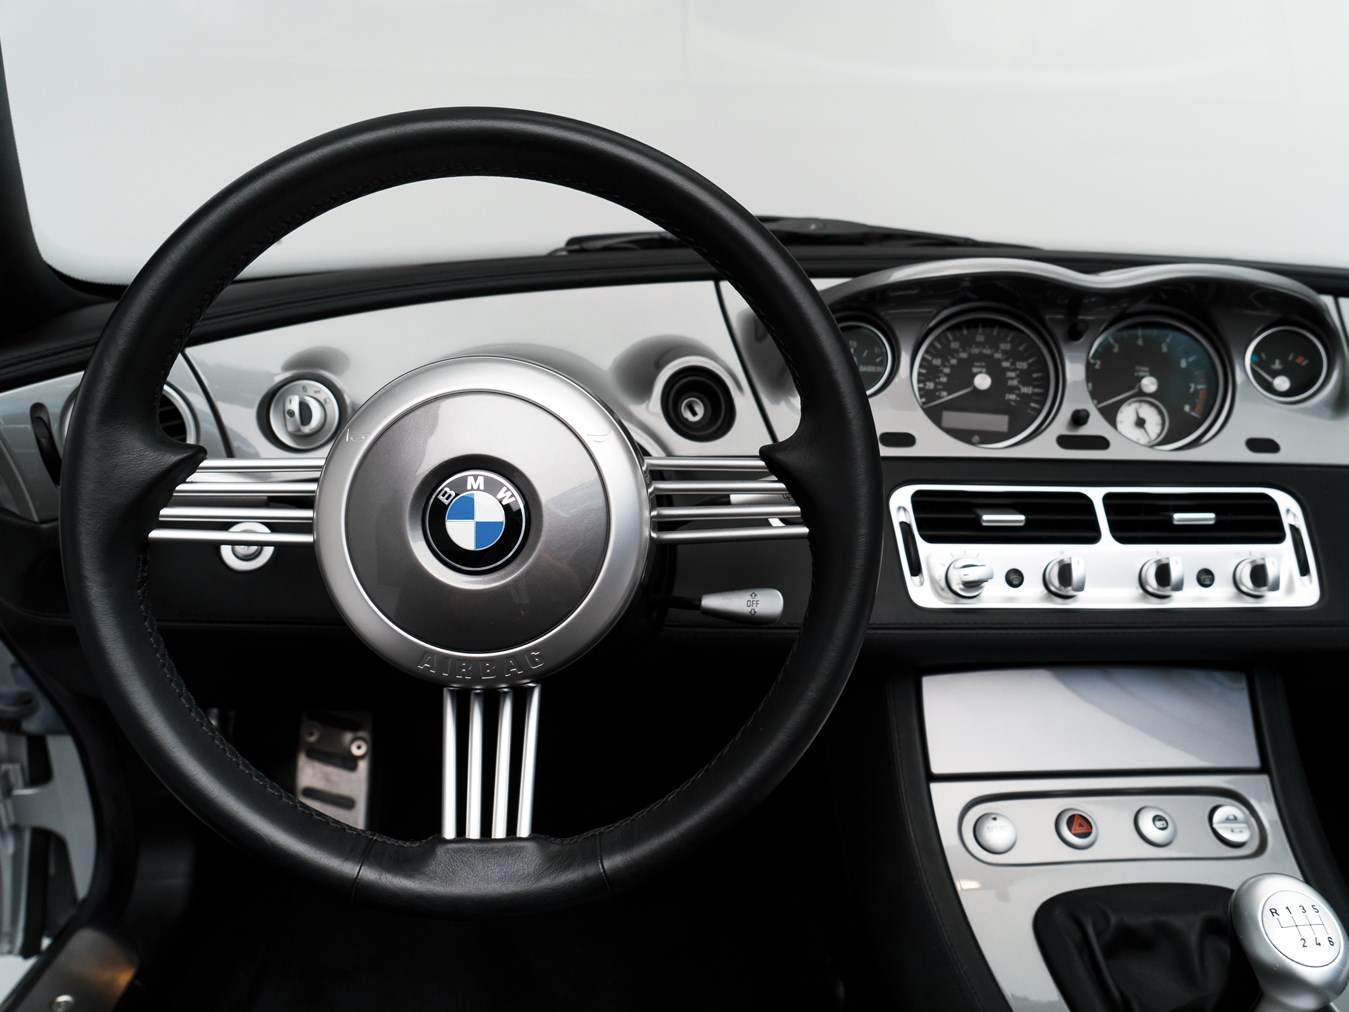 Steve Jobs 2000 Bmw Z8 German Cars For Sale Blog